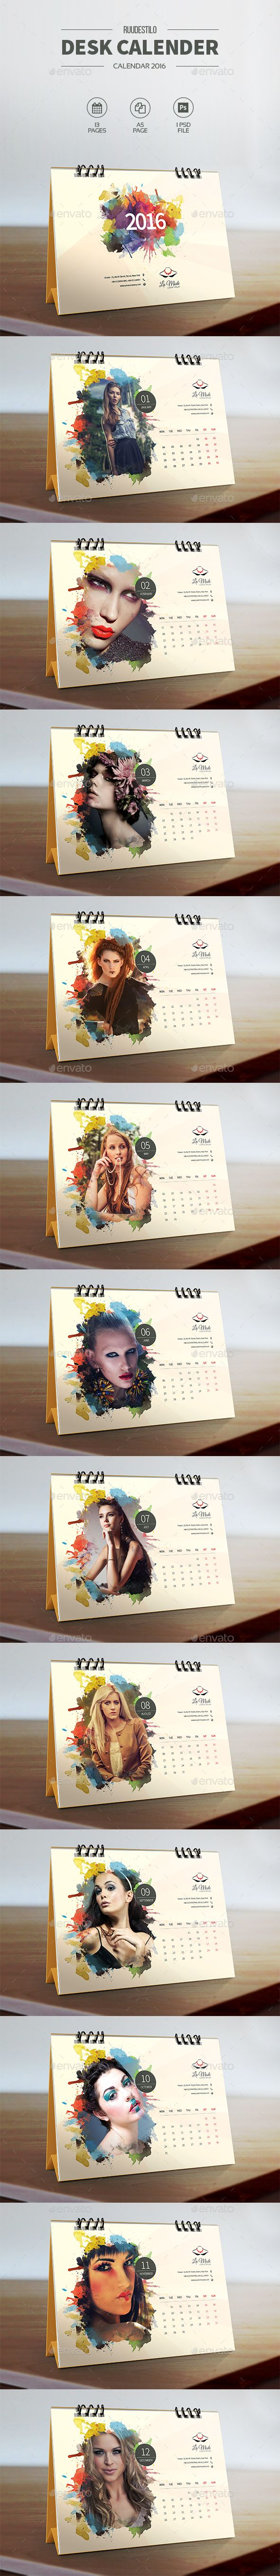 Desk Calendar 2016 Template PSD. Download here: http://graphicriver.net/item/desk-calendar-2016/14166030?ref=ksioks